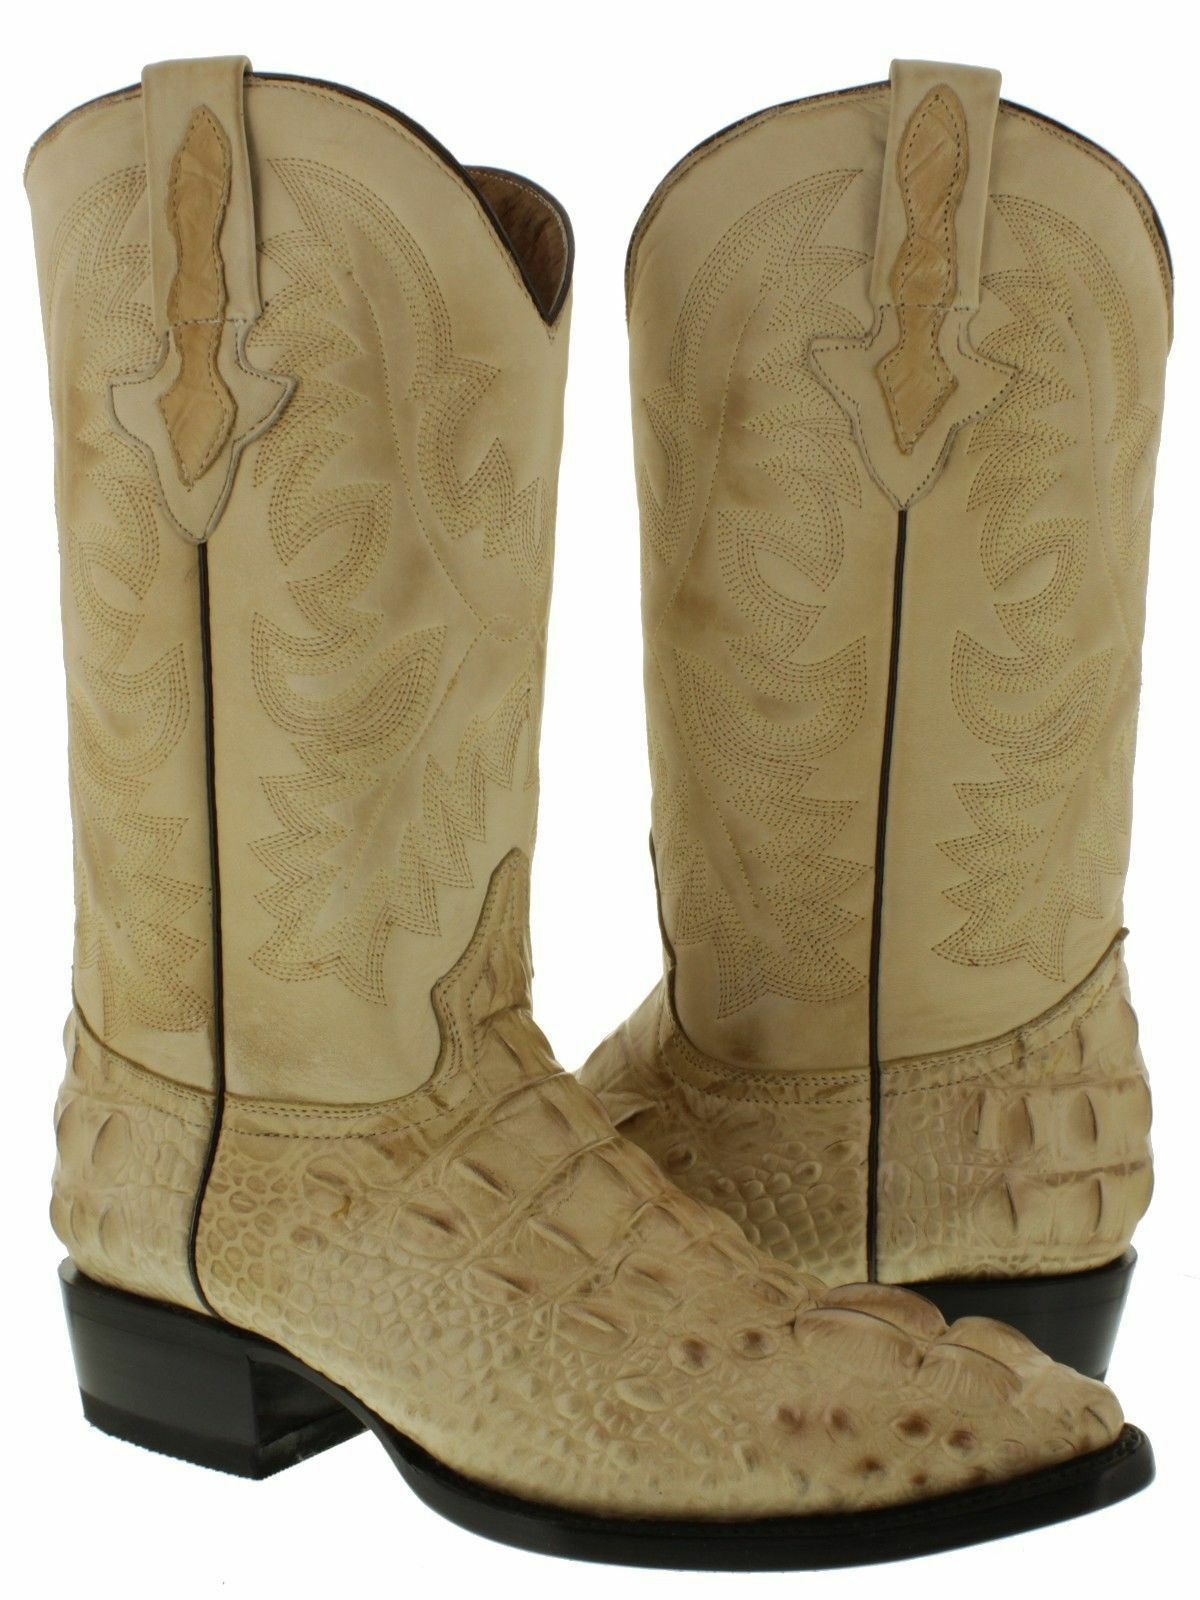 Men's Sand Top Crocodile Alligator Hornback Country Cowboy Boots J Toe